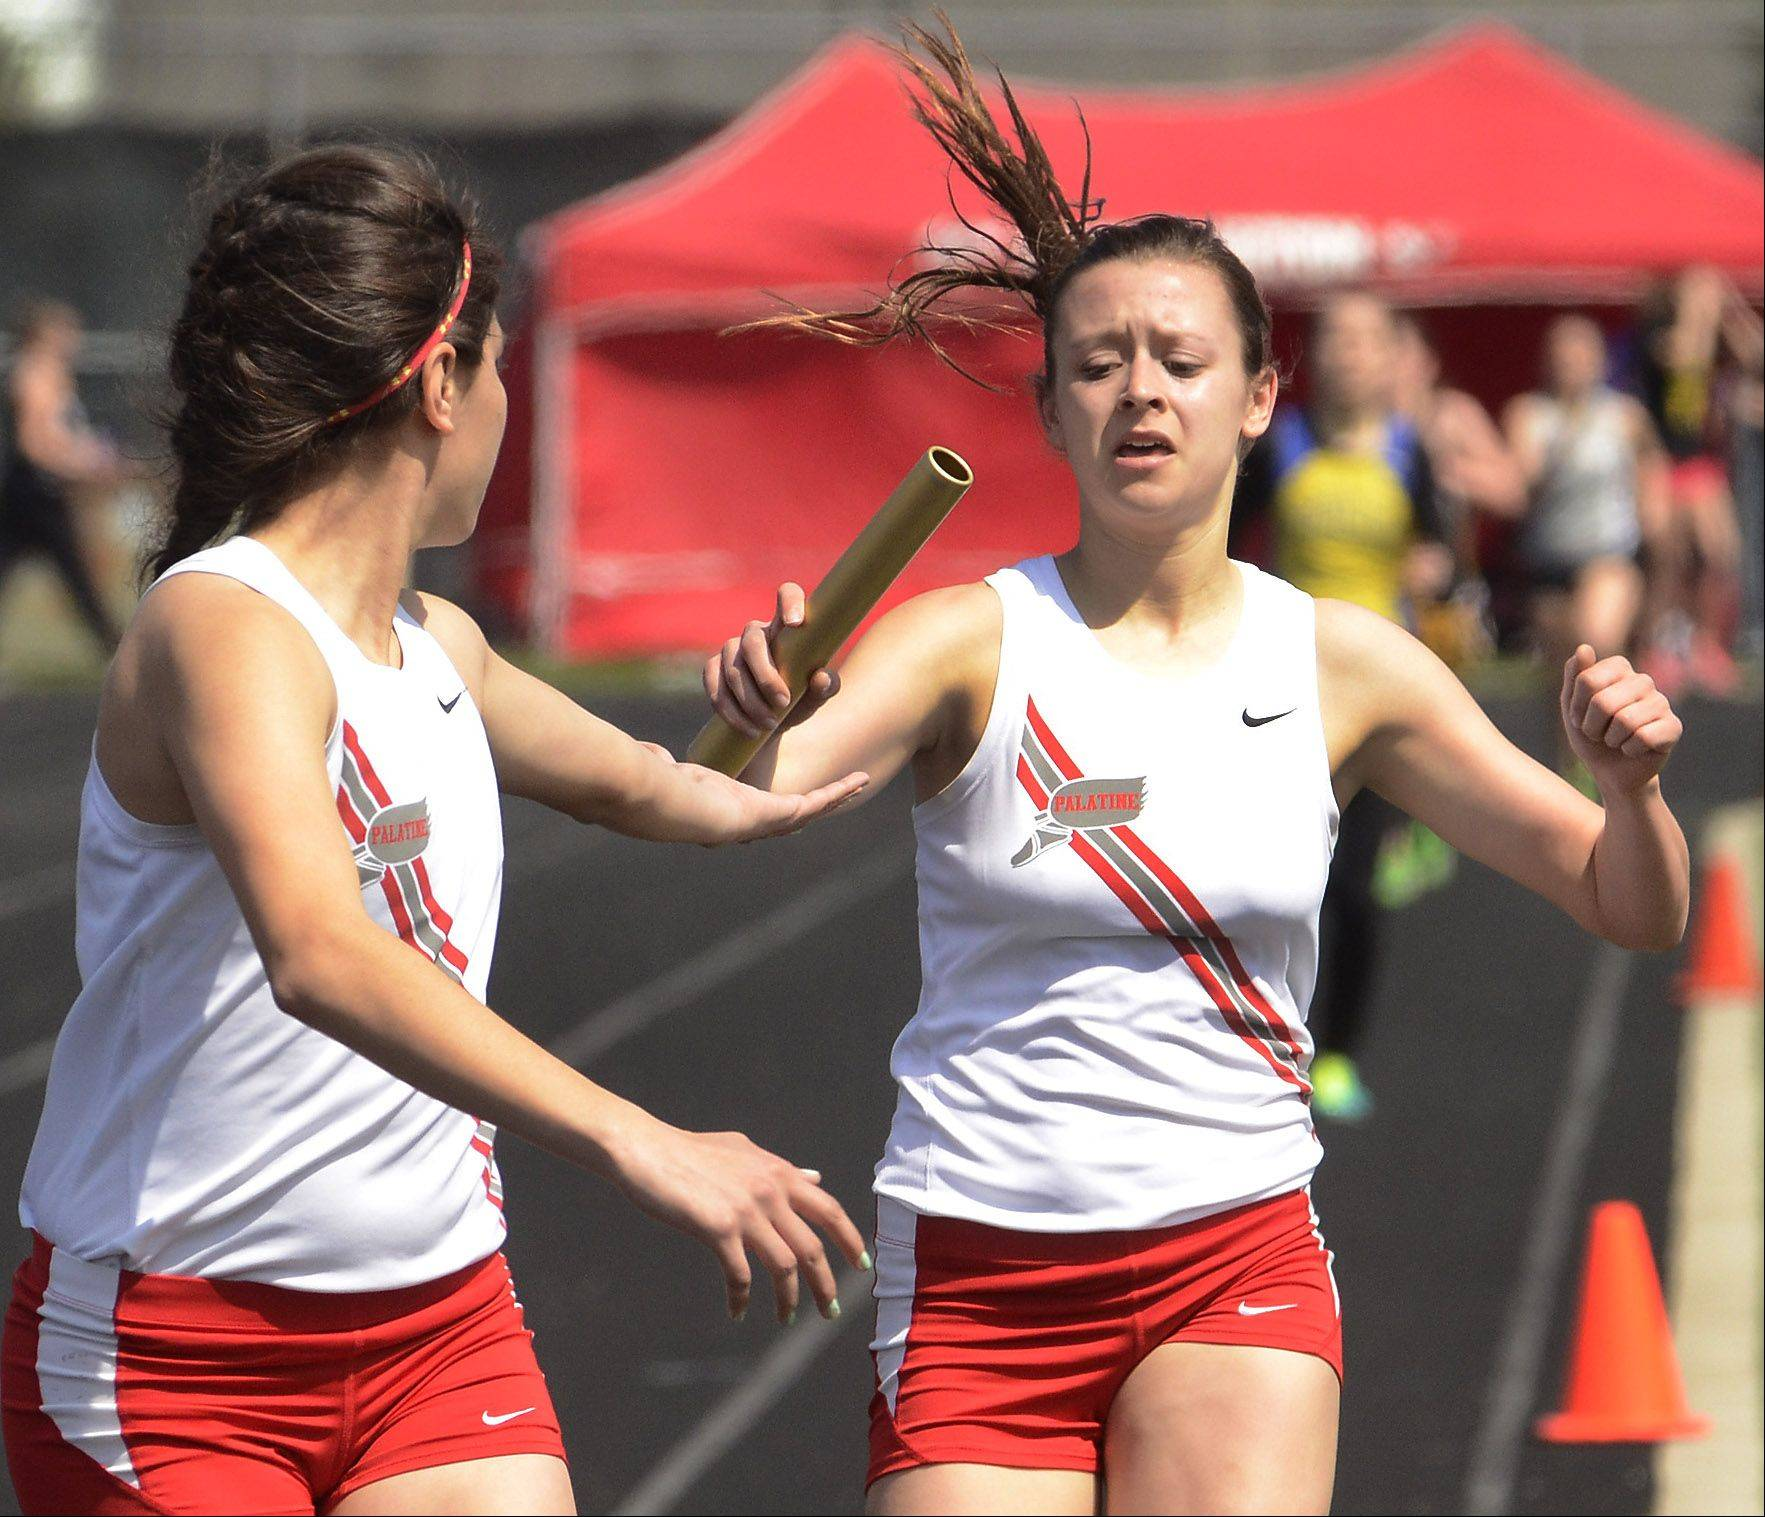 Palatine�s Tess Wasowicz, right, hands off to Lorena Soriaba on the first leg of the distance medley at the Palatine Relays on Saturday. Palatine won the event in 12:31.48.